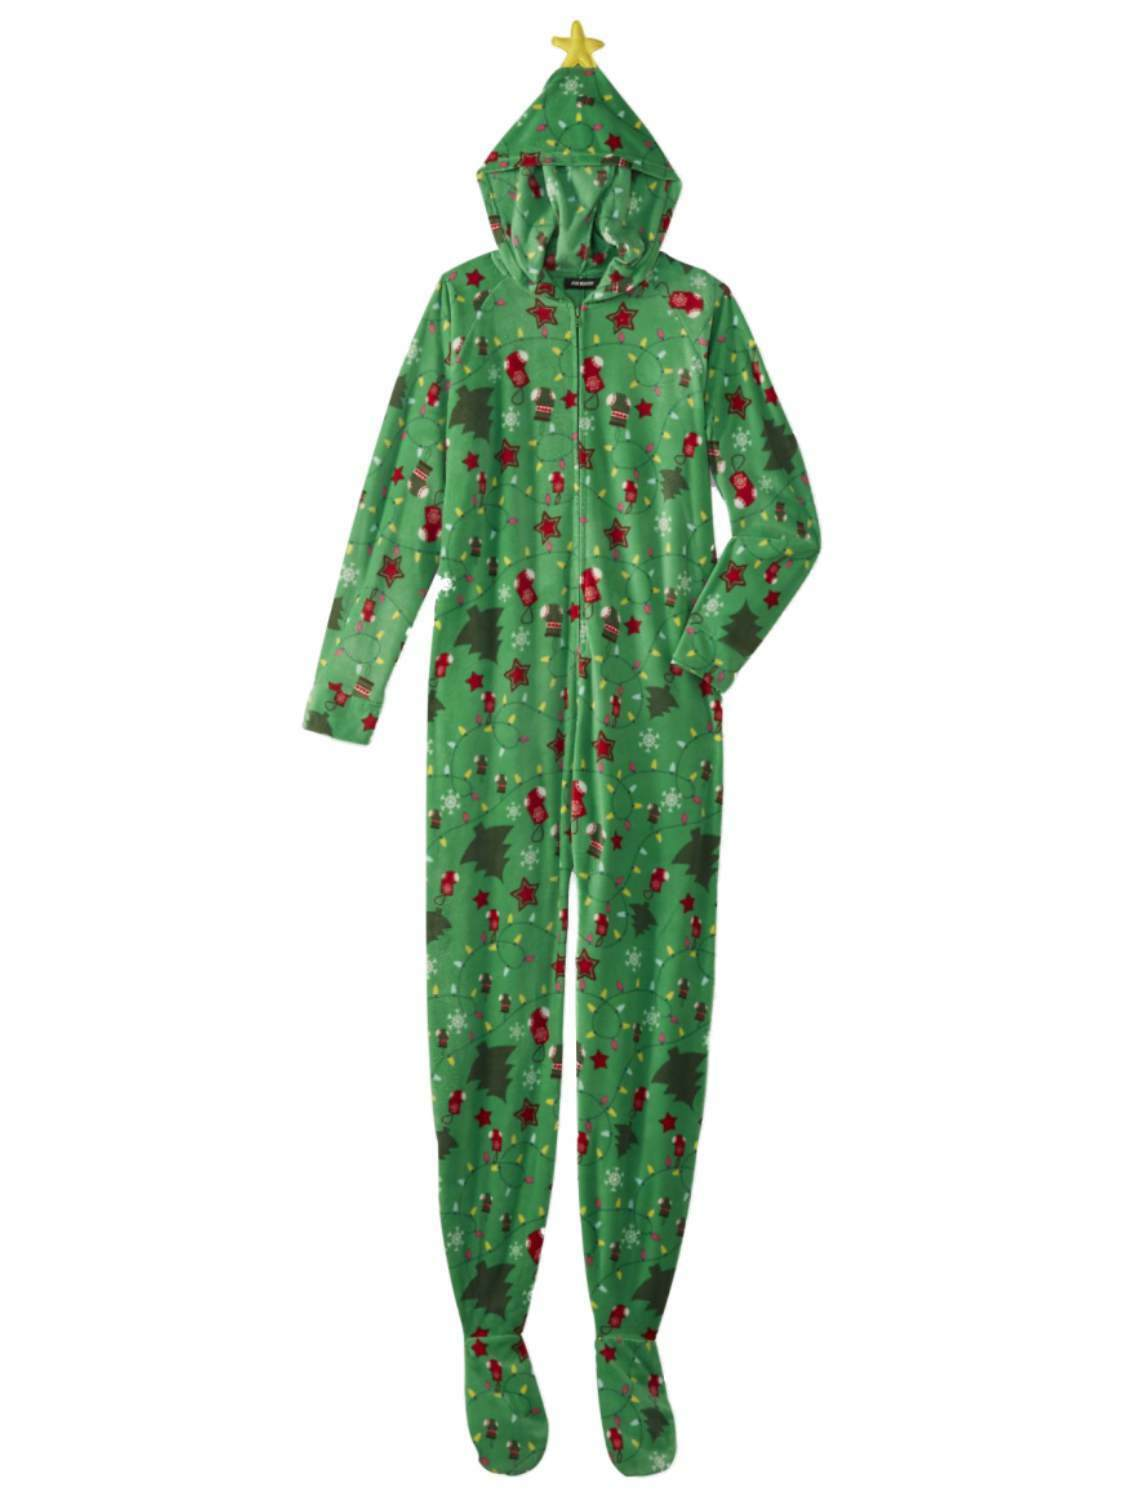 Womens Green Christmas Tree Blanket Sleeper Holiday Pajama Hooded Union Suit